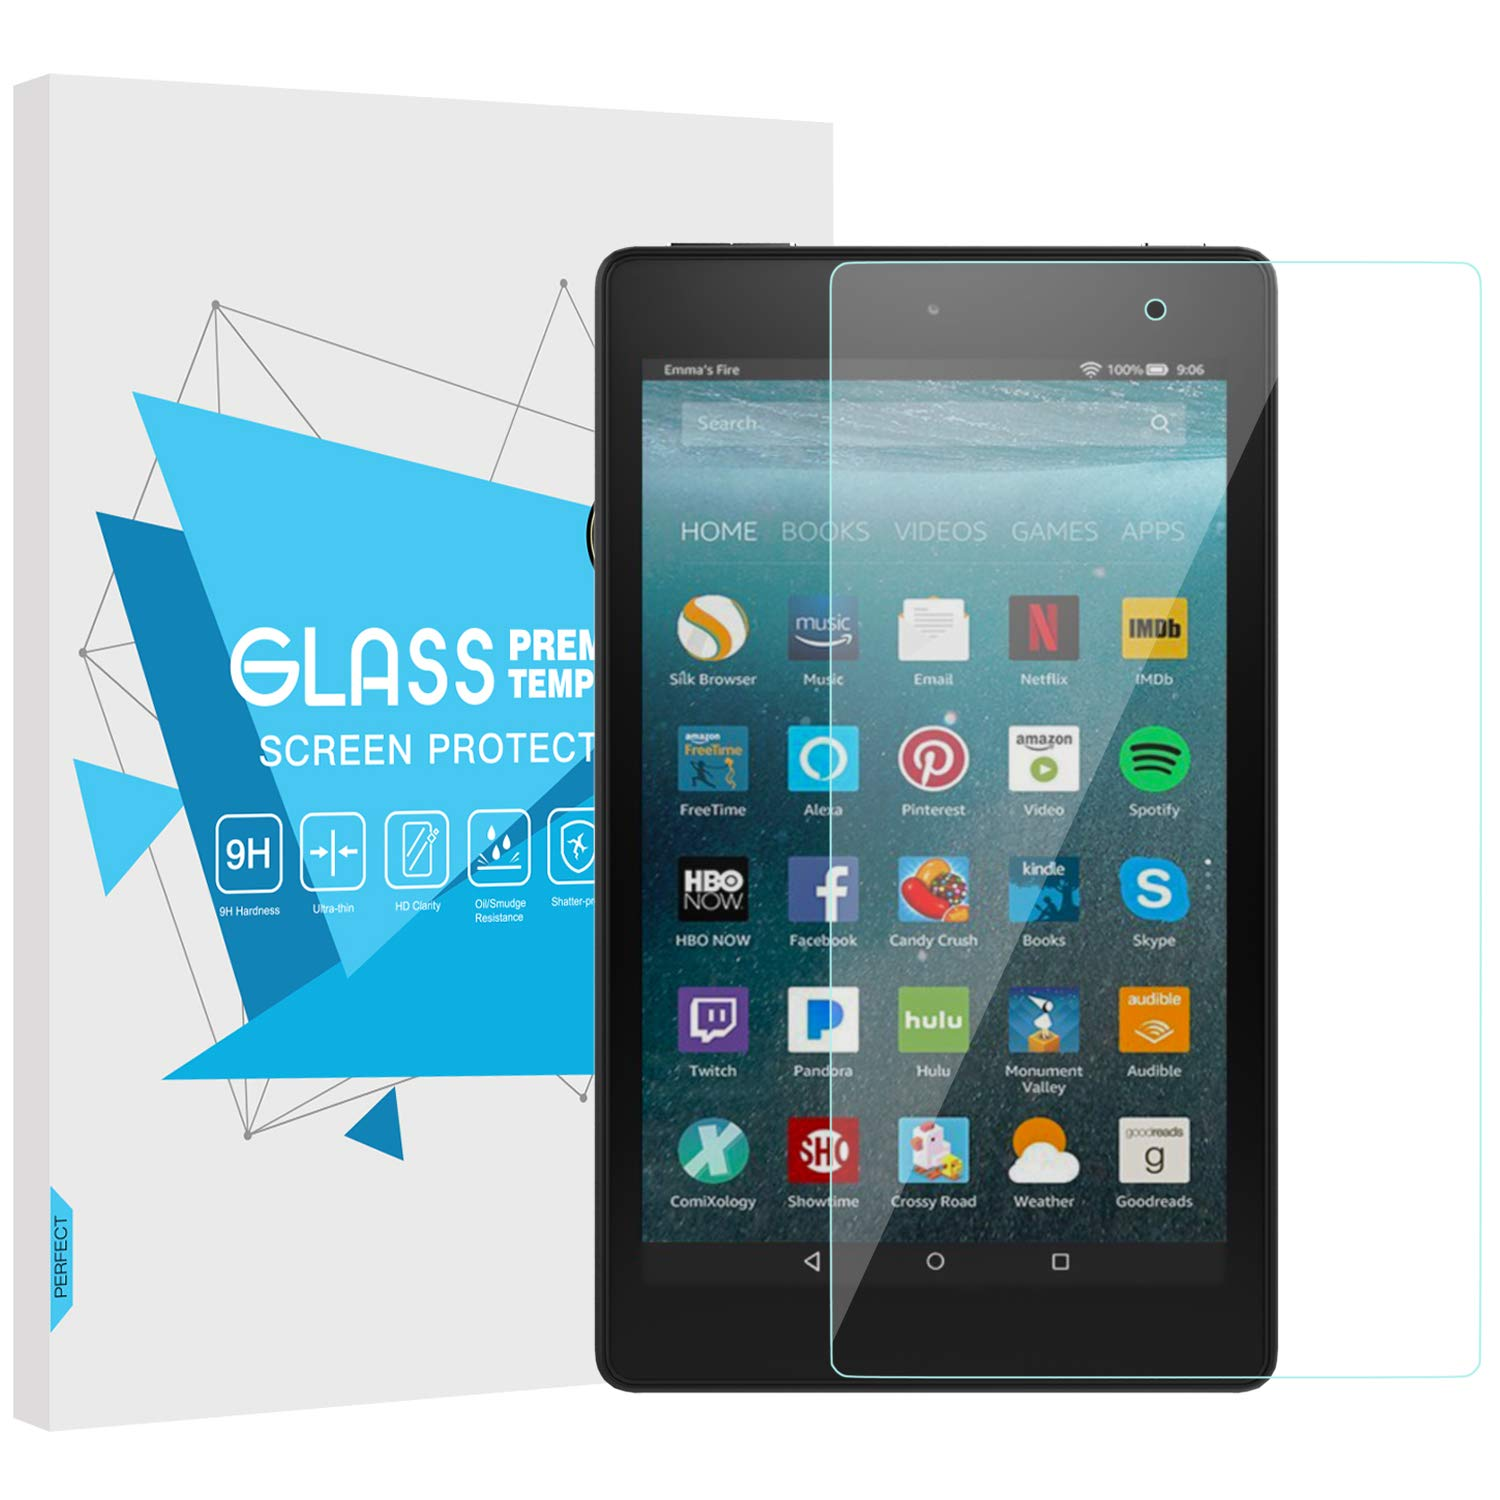 LCD Tempered Glass Screen Protector Film For Amazon Kindle fire 7 HD 8 10 2017